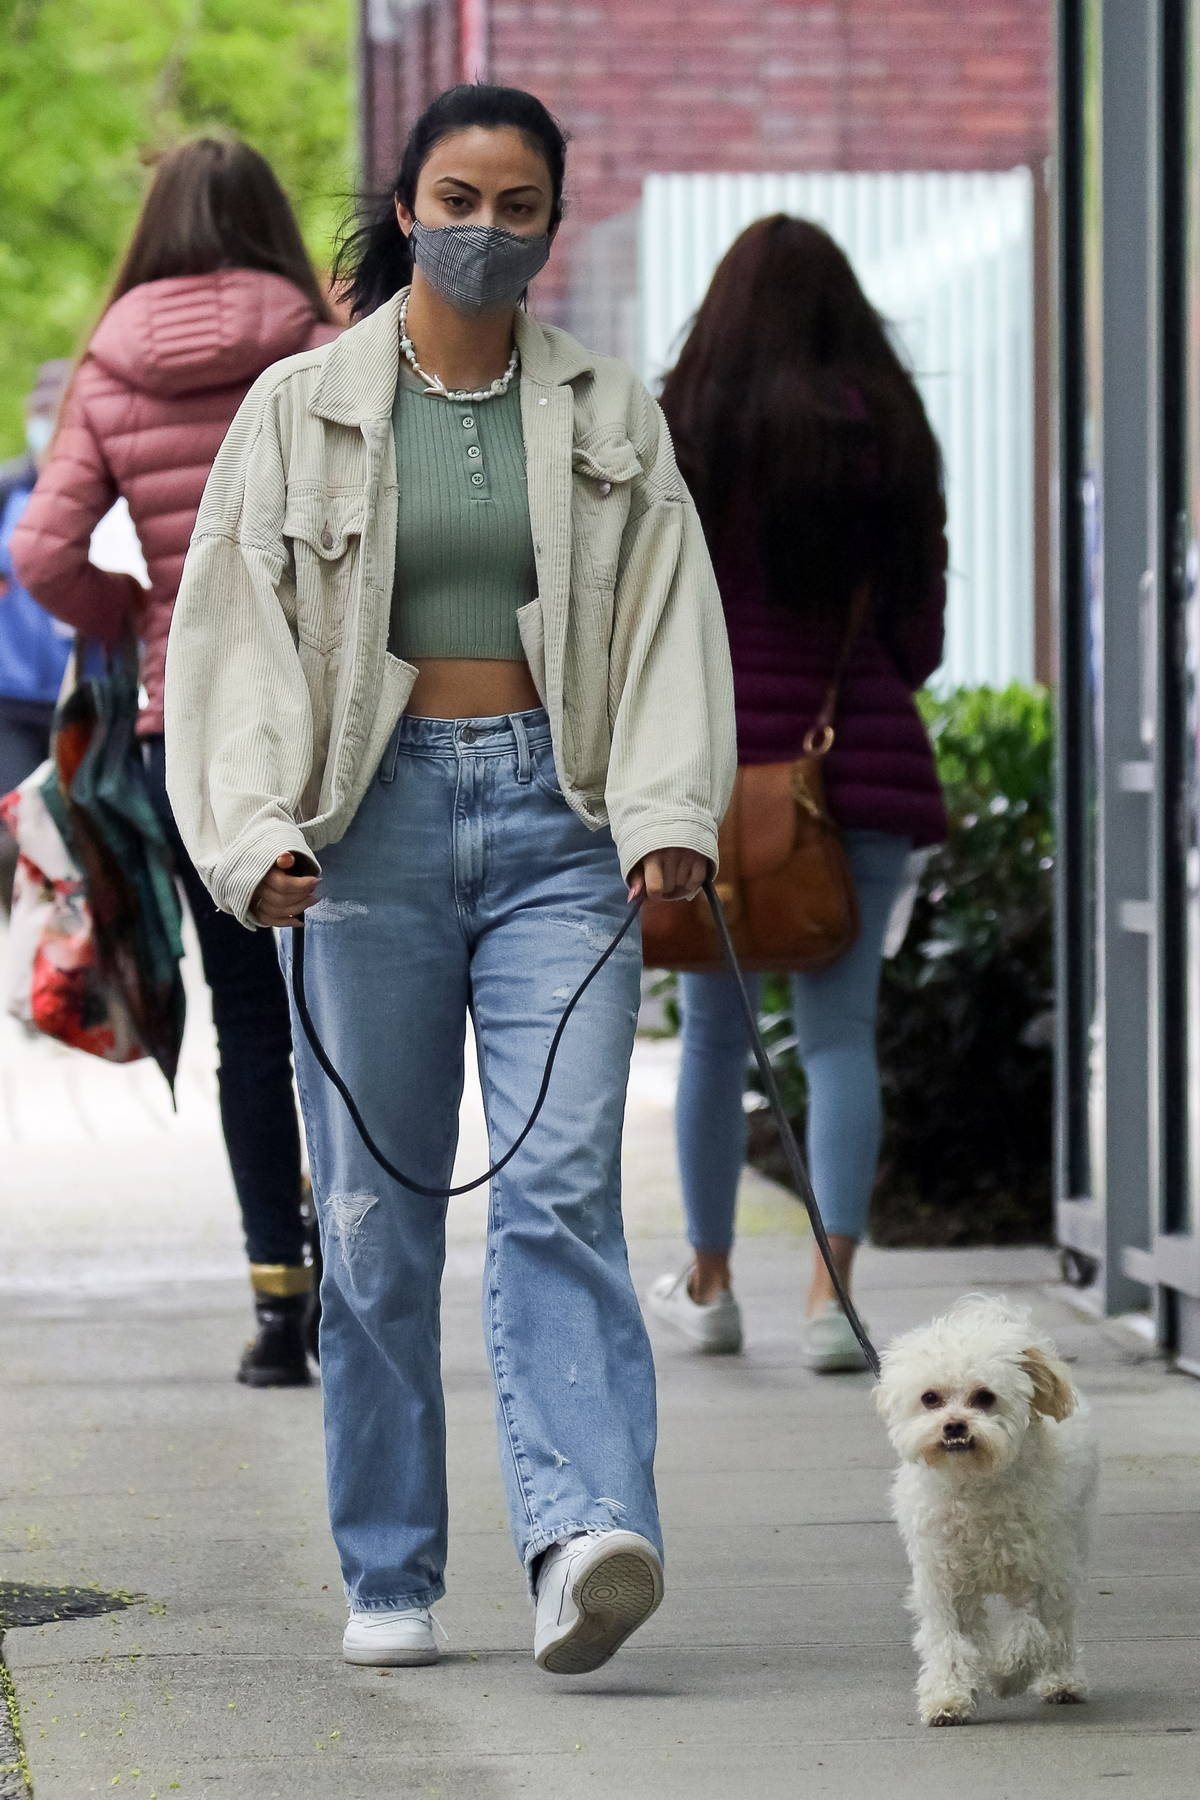 Camila Mendes stepped out to walk her dog in Vancouver, Canada